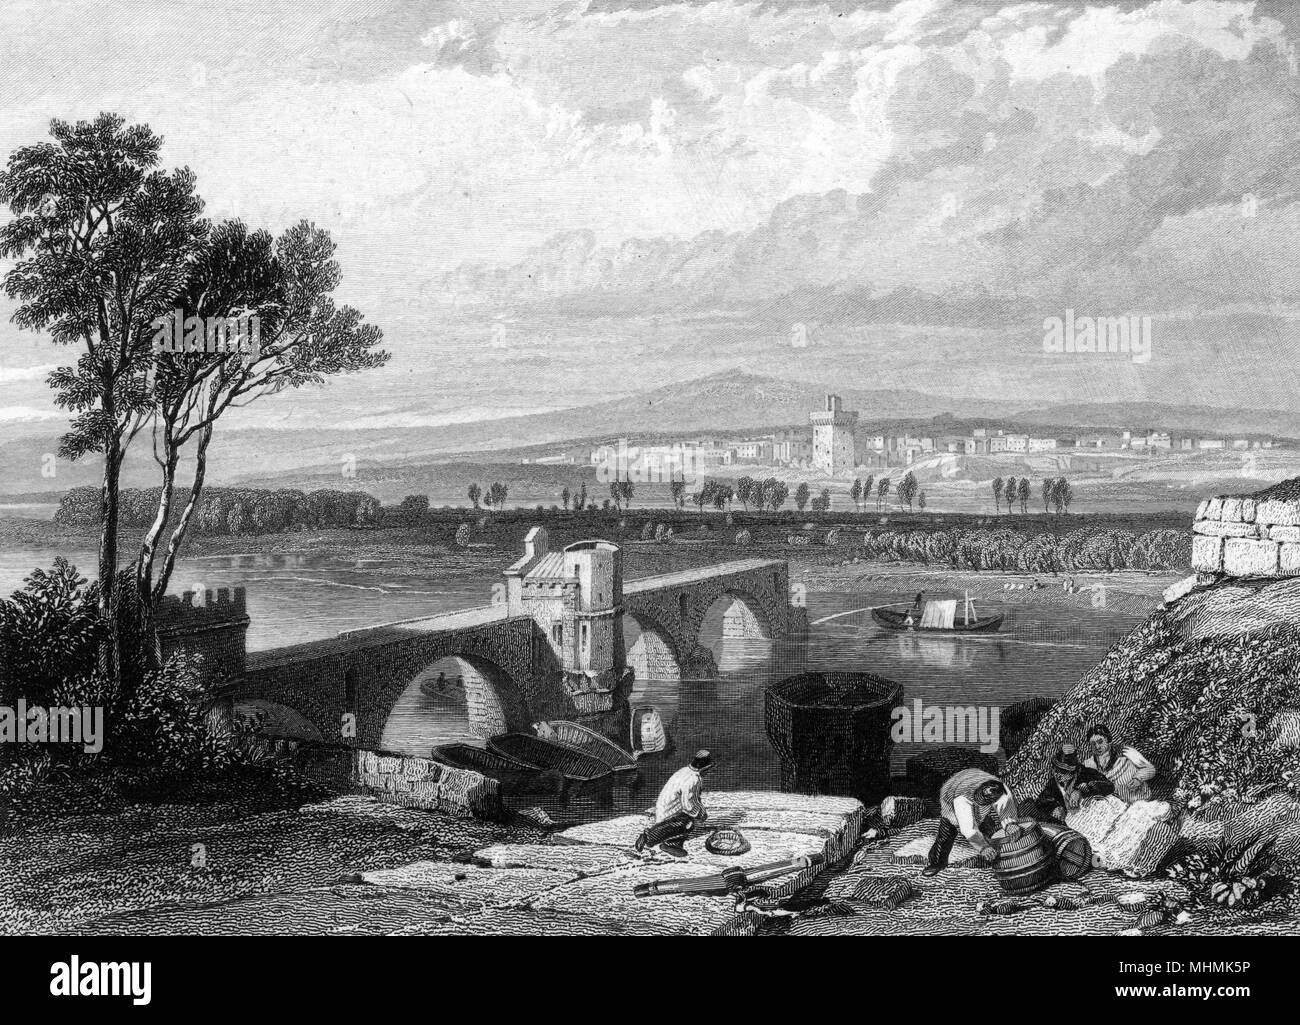 Avignon: the partially completed bridge, with people working in the foreground      Date: 19th century - Stock Image